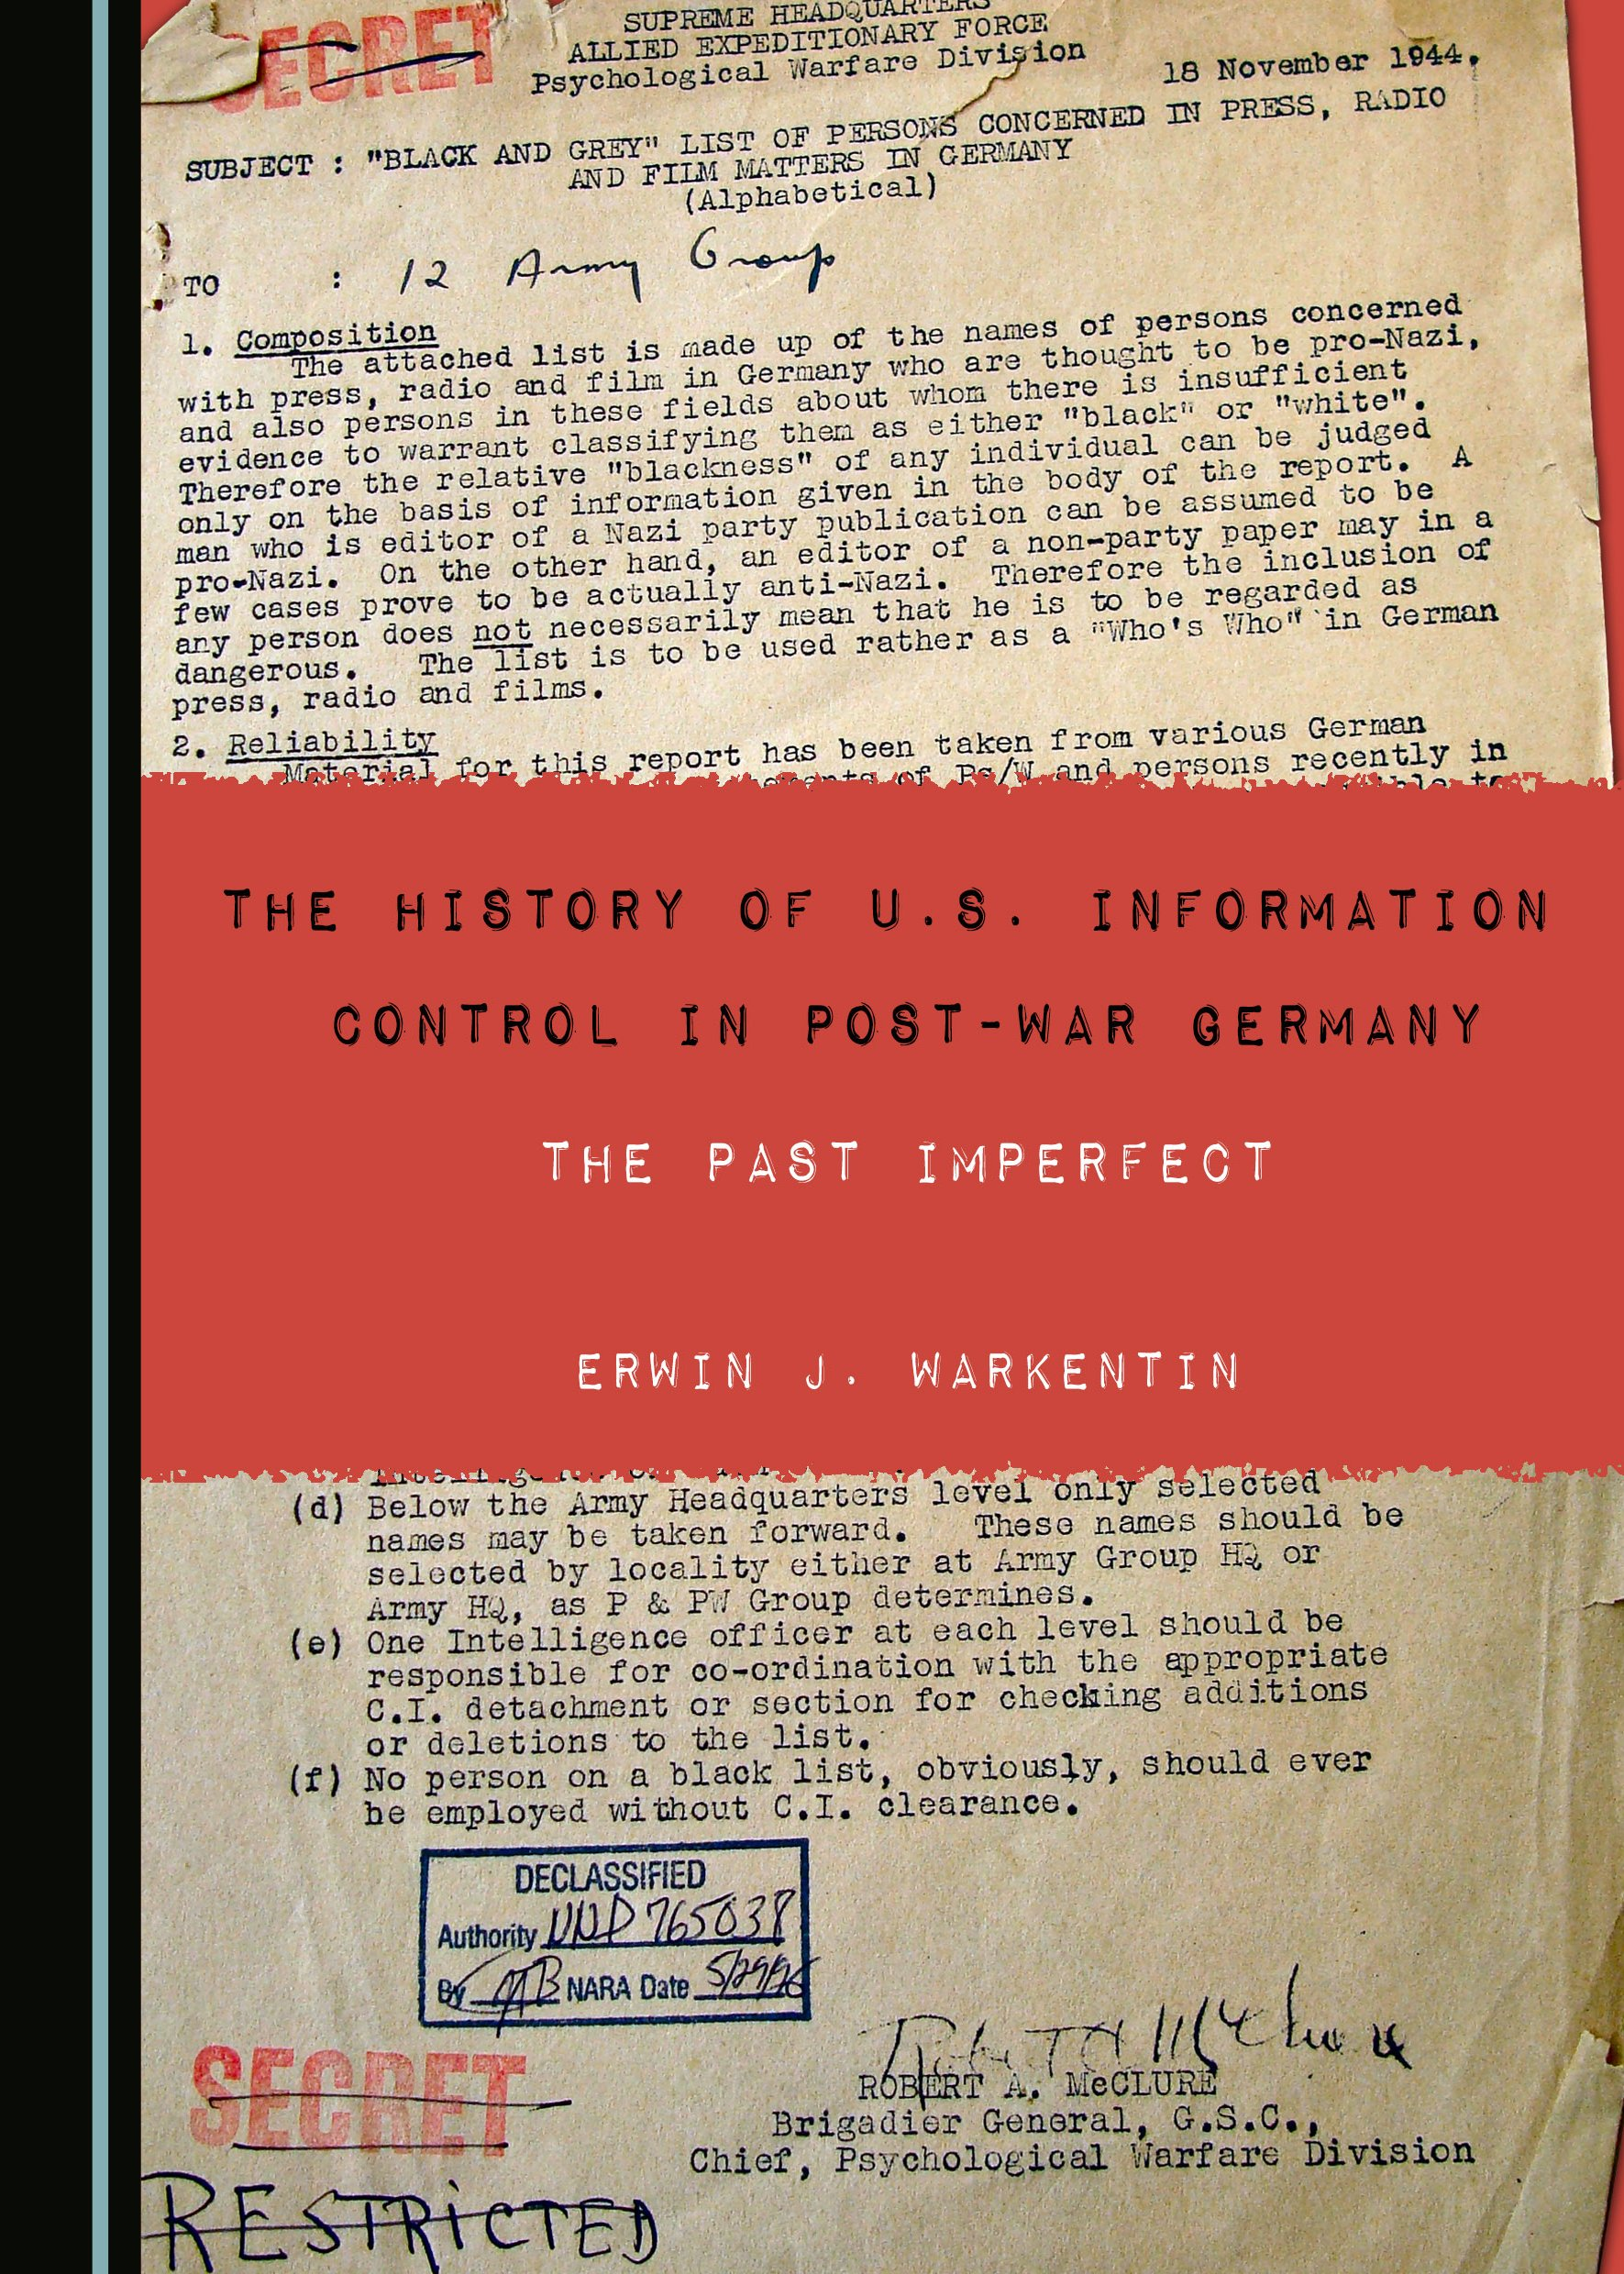 The History of U.S. Information Control in Post-War Germany: The Past Imperfect